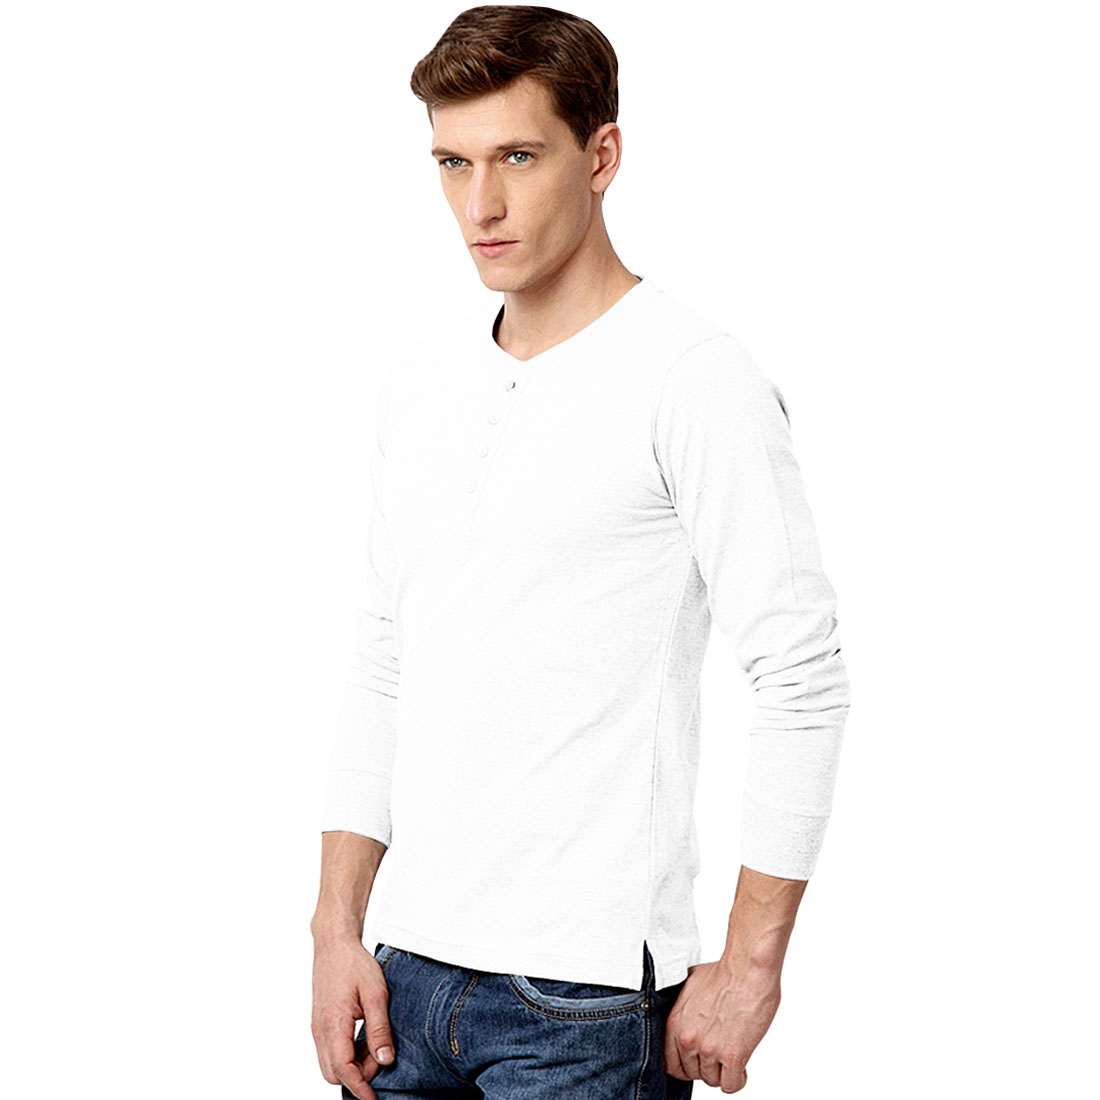 Shop for white mens henley shirt online at Target. Free shipping on purchases over $35 and save 5% every day with your Target REDcard.